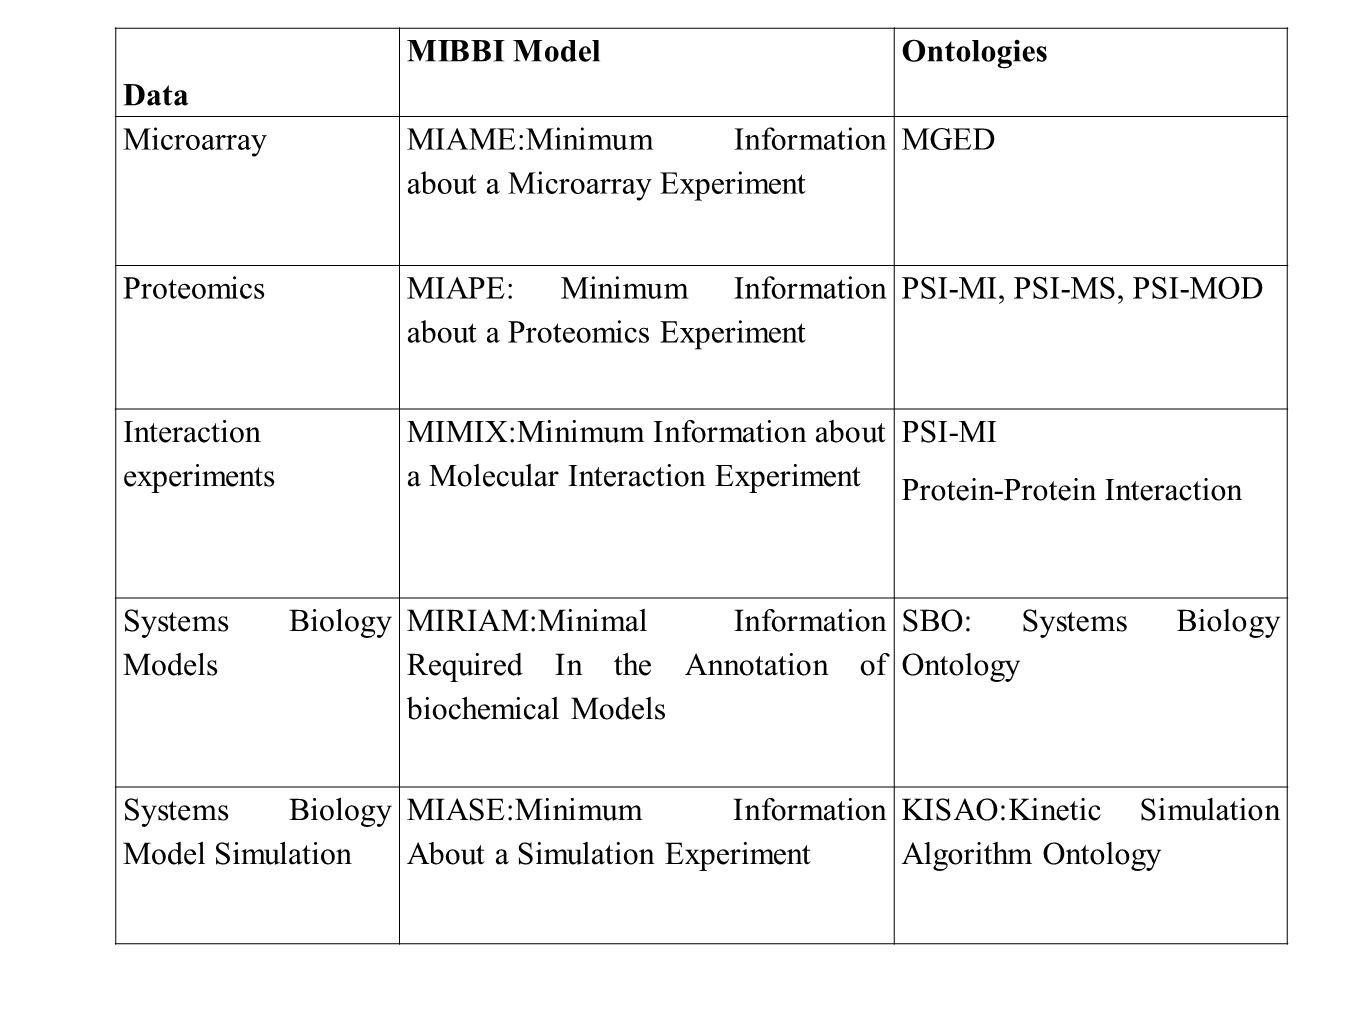 Data MIBBI ModelOntologies Microarray MIAME:Minimum Information about a Microarray Experiment MGED Proteomics MIAPE: Minimum Information about a Prote